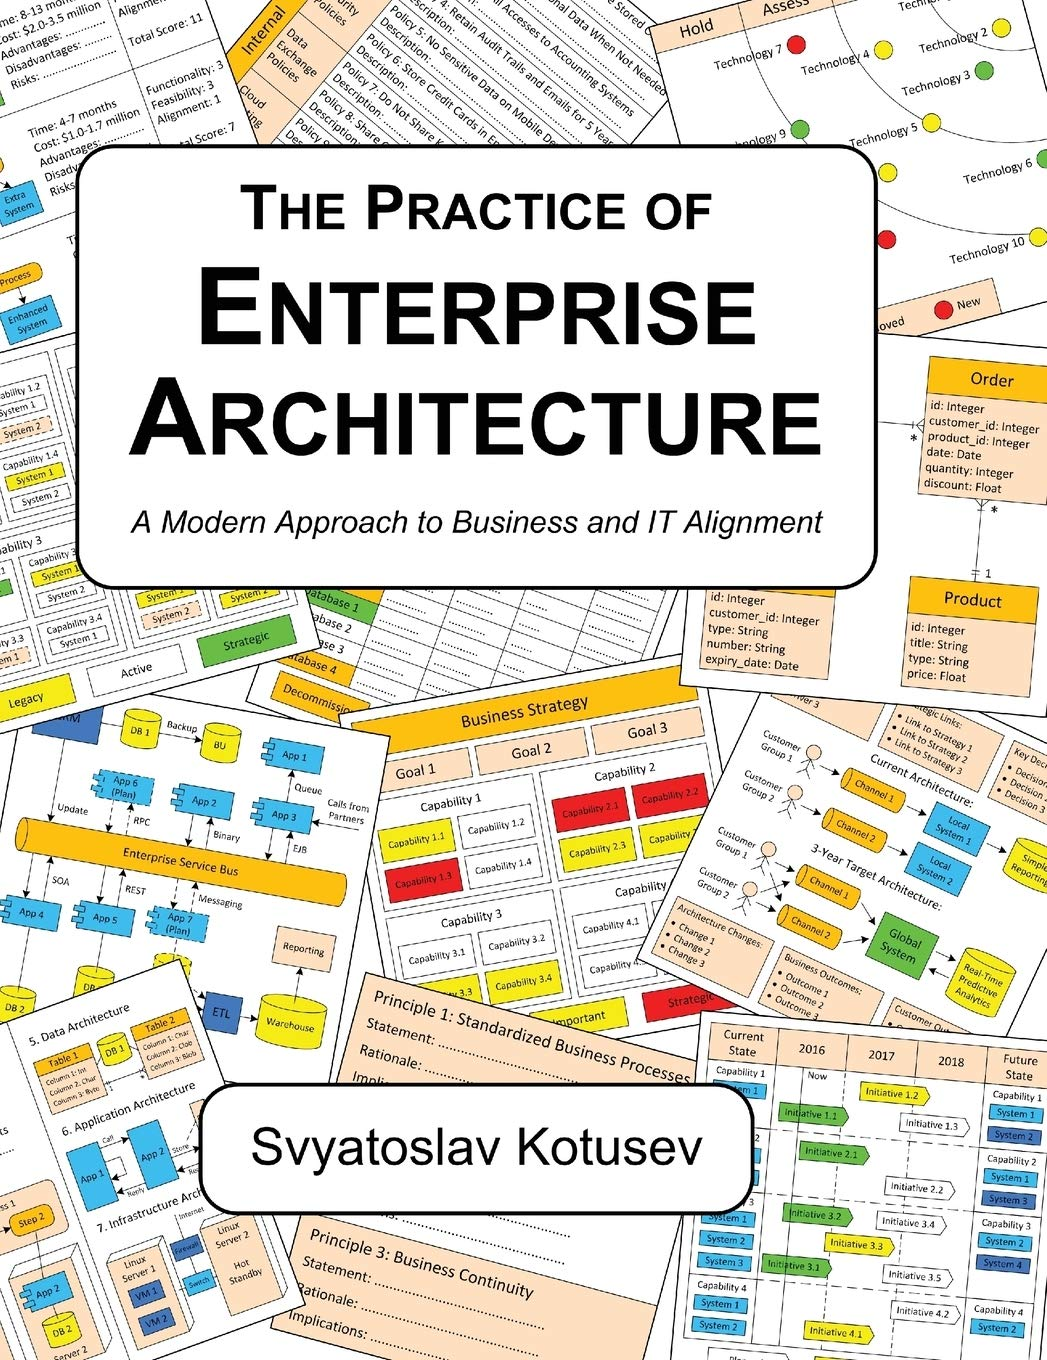 Amazon Com The Practice Of Enterprise Architecture A Modern Approach To Business And It Alignment 9780648309833 Kotusev Svyatoslav Books